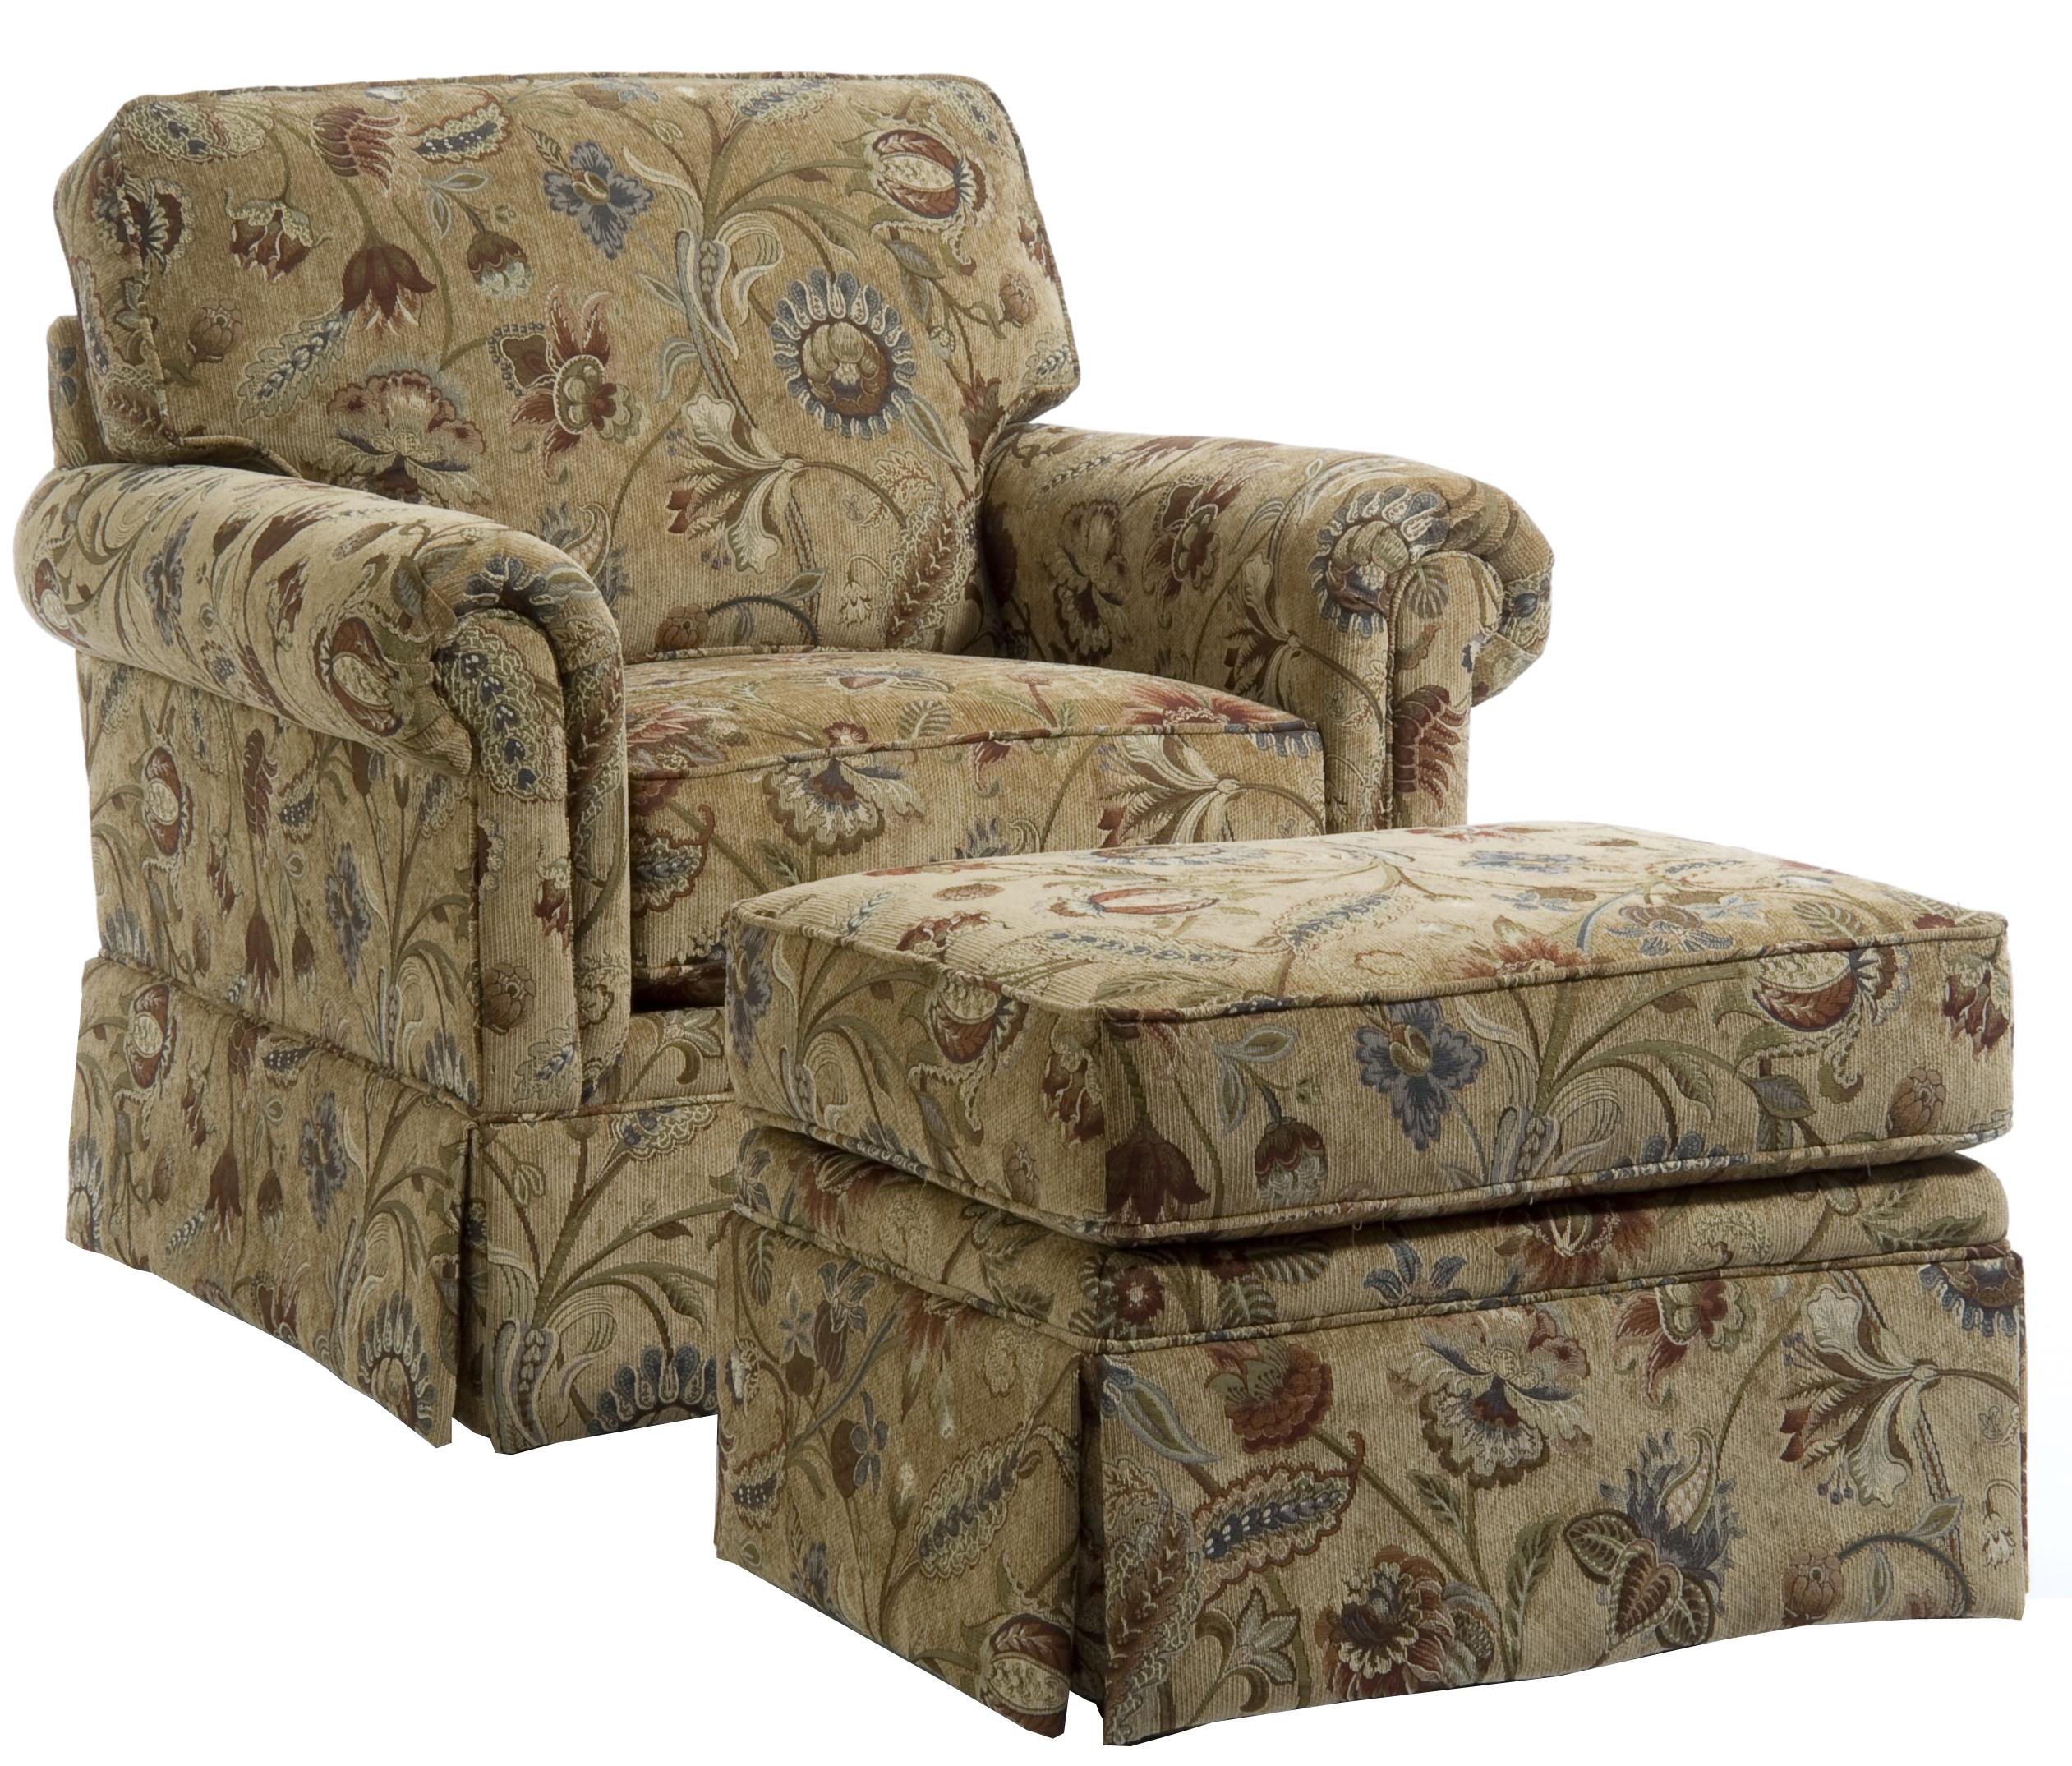 Exceptionnel Broyhill Furniture Audrey Chair And Ottoman   Item Number: 3762 0+5